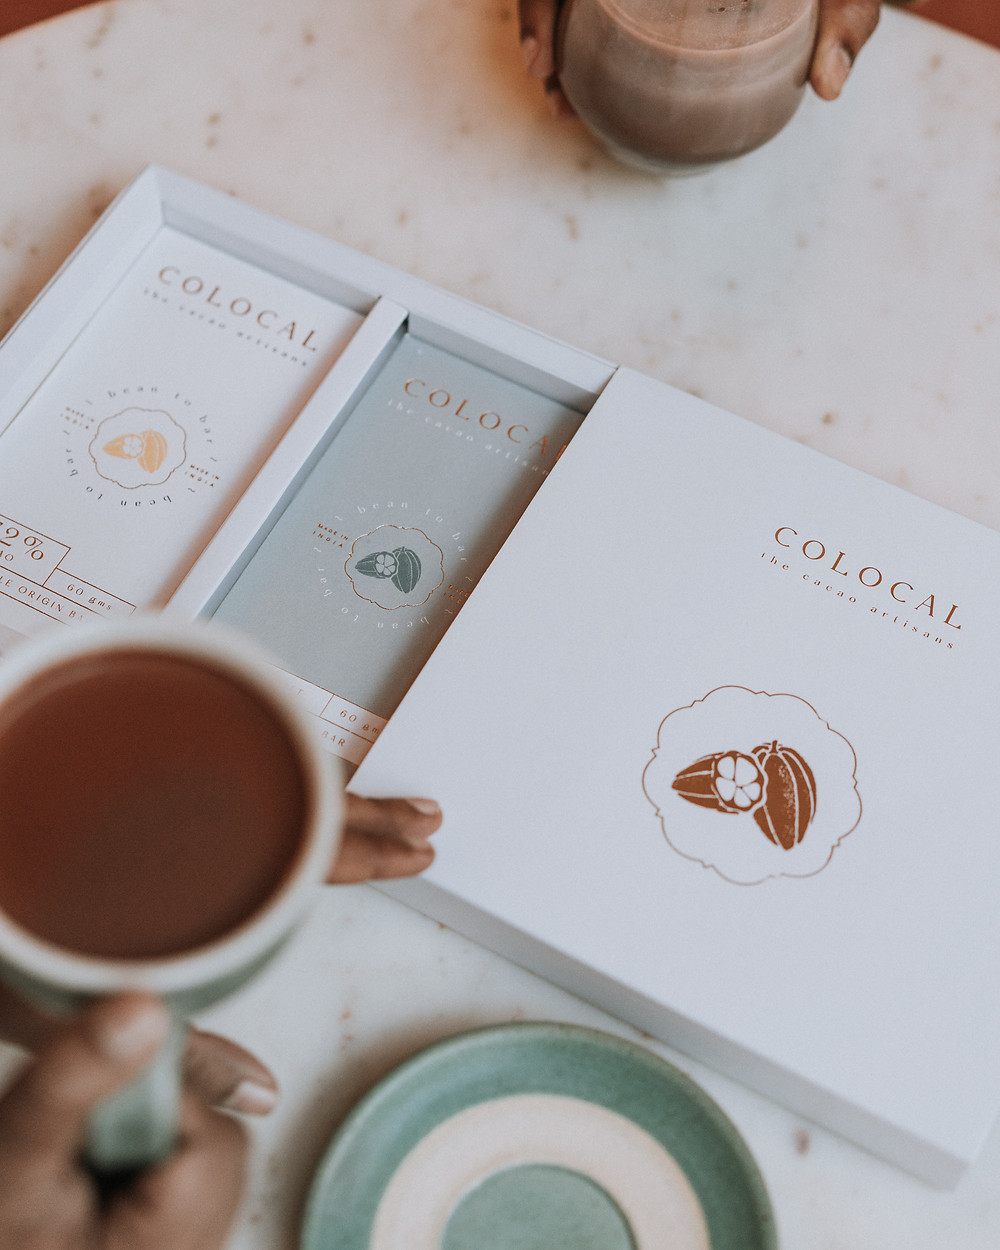 Artisanal Chocolates and Coffee for Festive Gifting